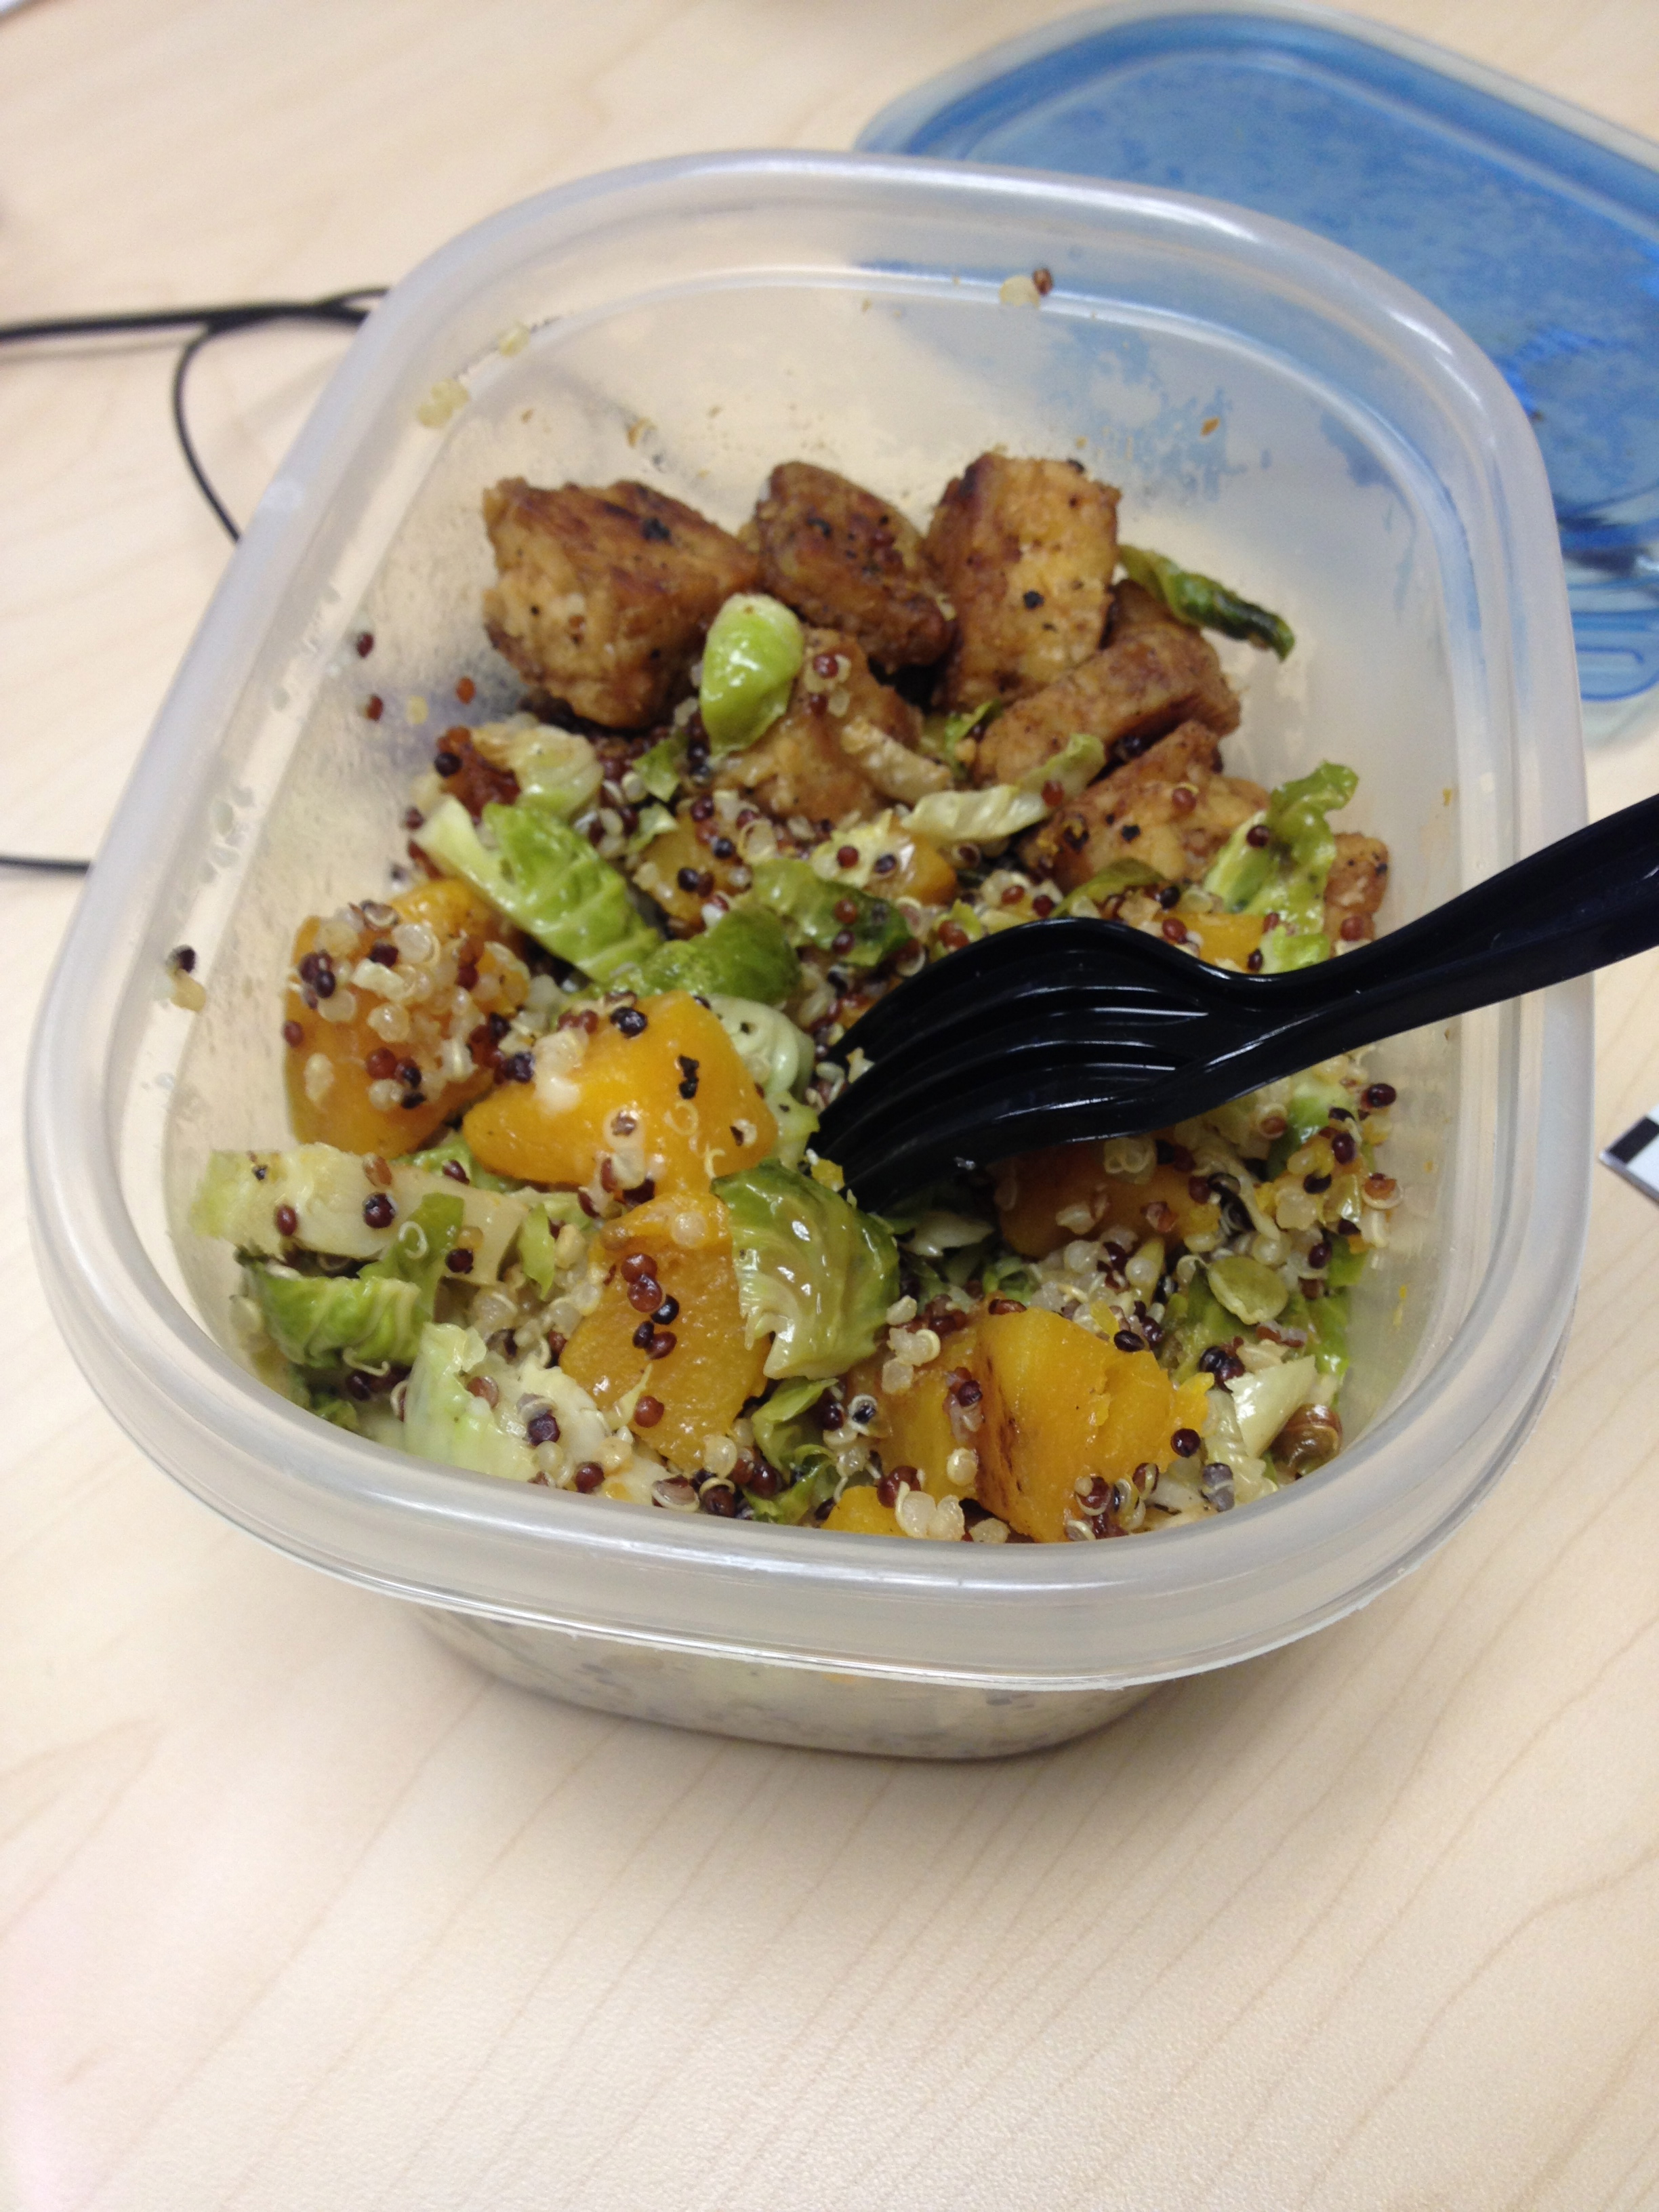 Straight from my lunch box with some tempeh!